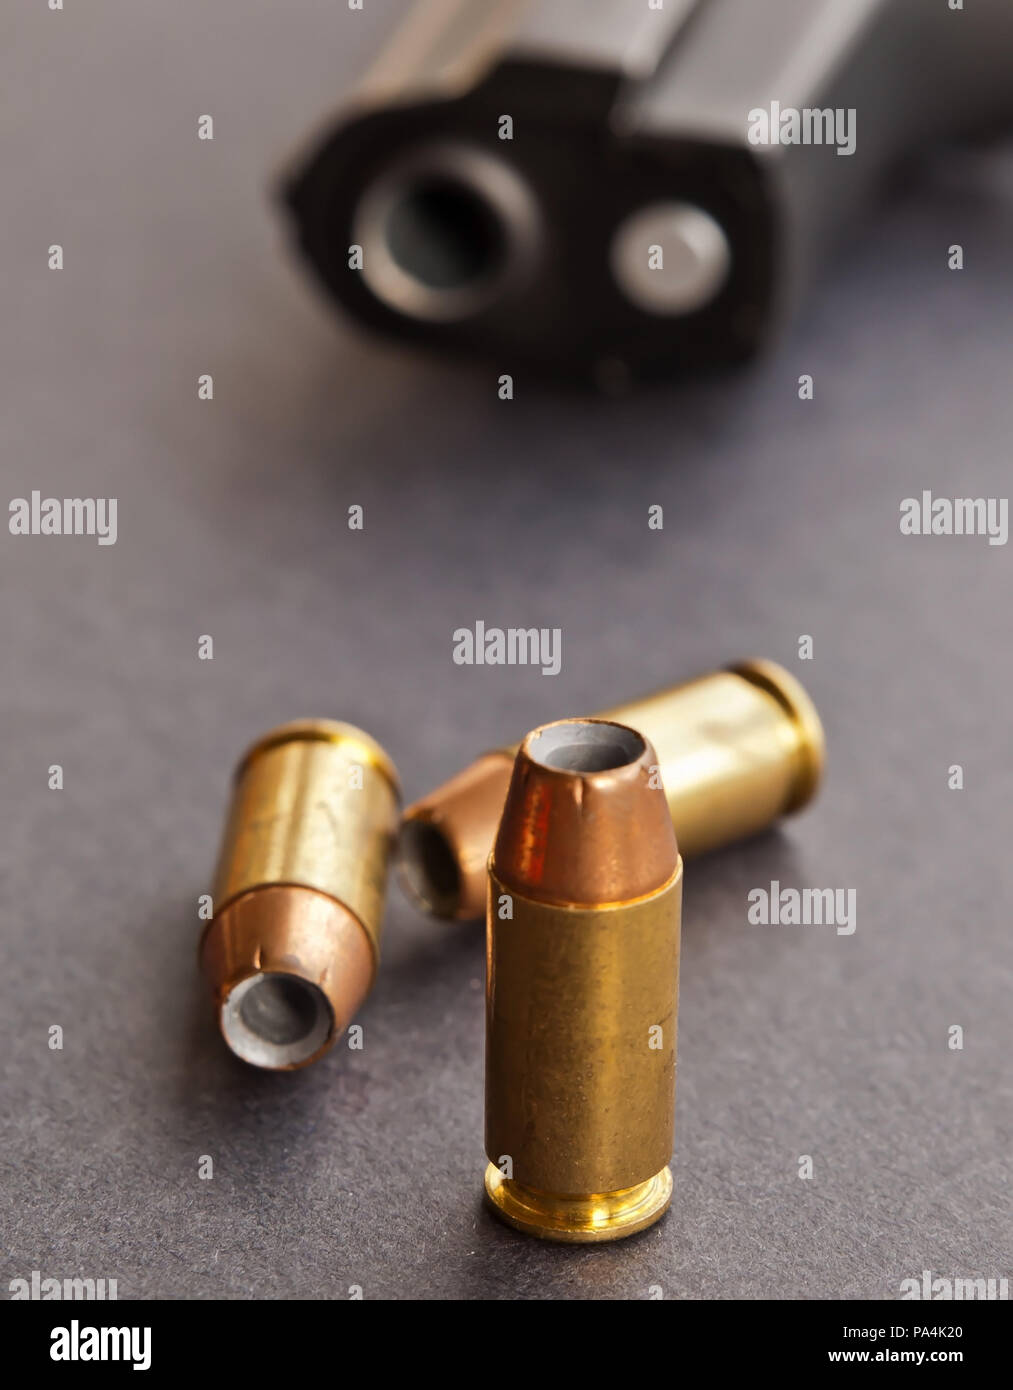 Three 40 caliber hollow point bullets on a black background with a black pistol laying behind them showing only it's muzzle - Stock Image